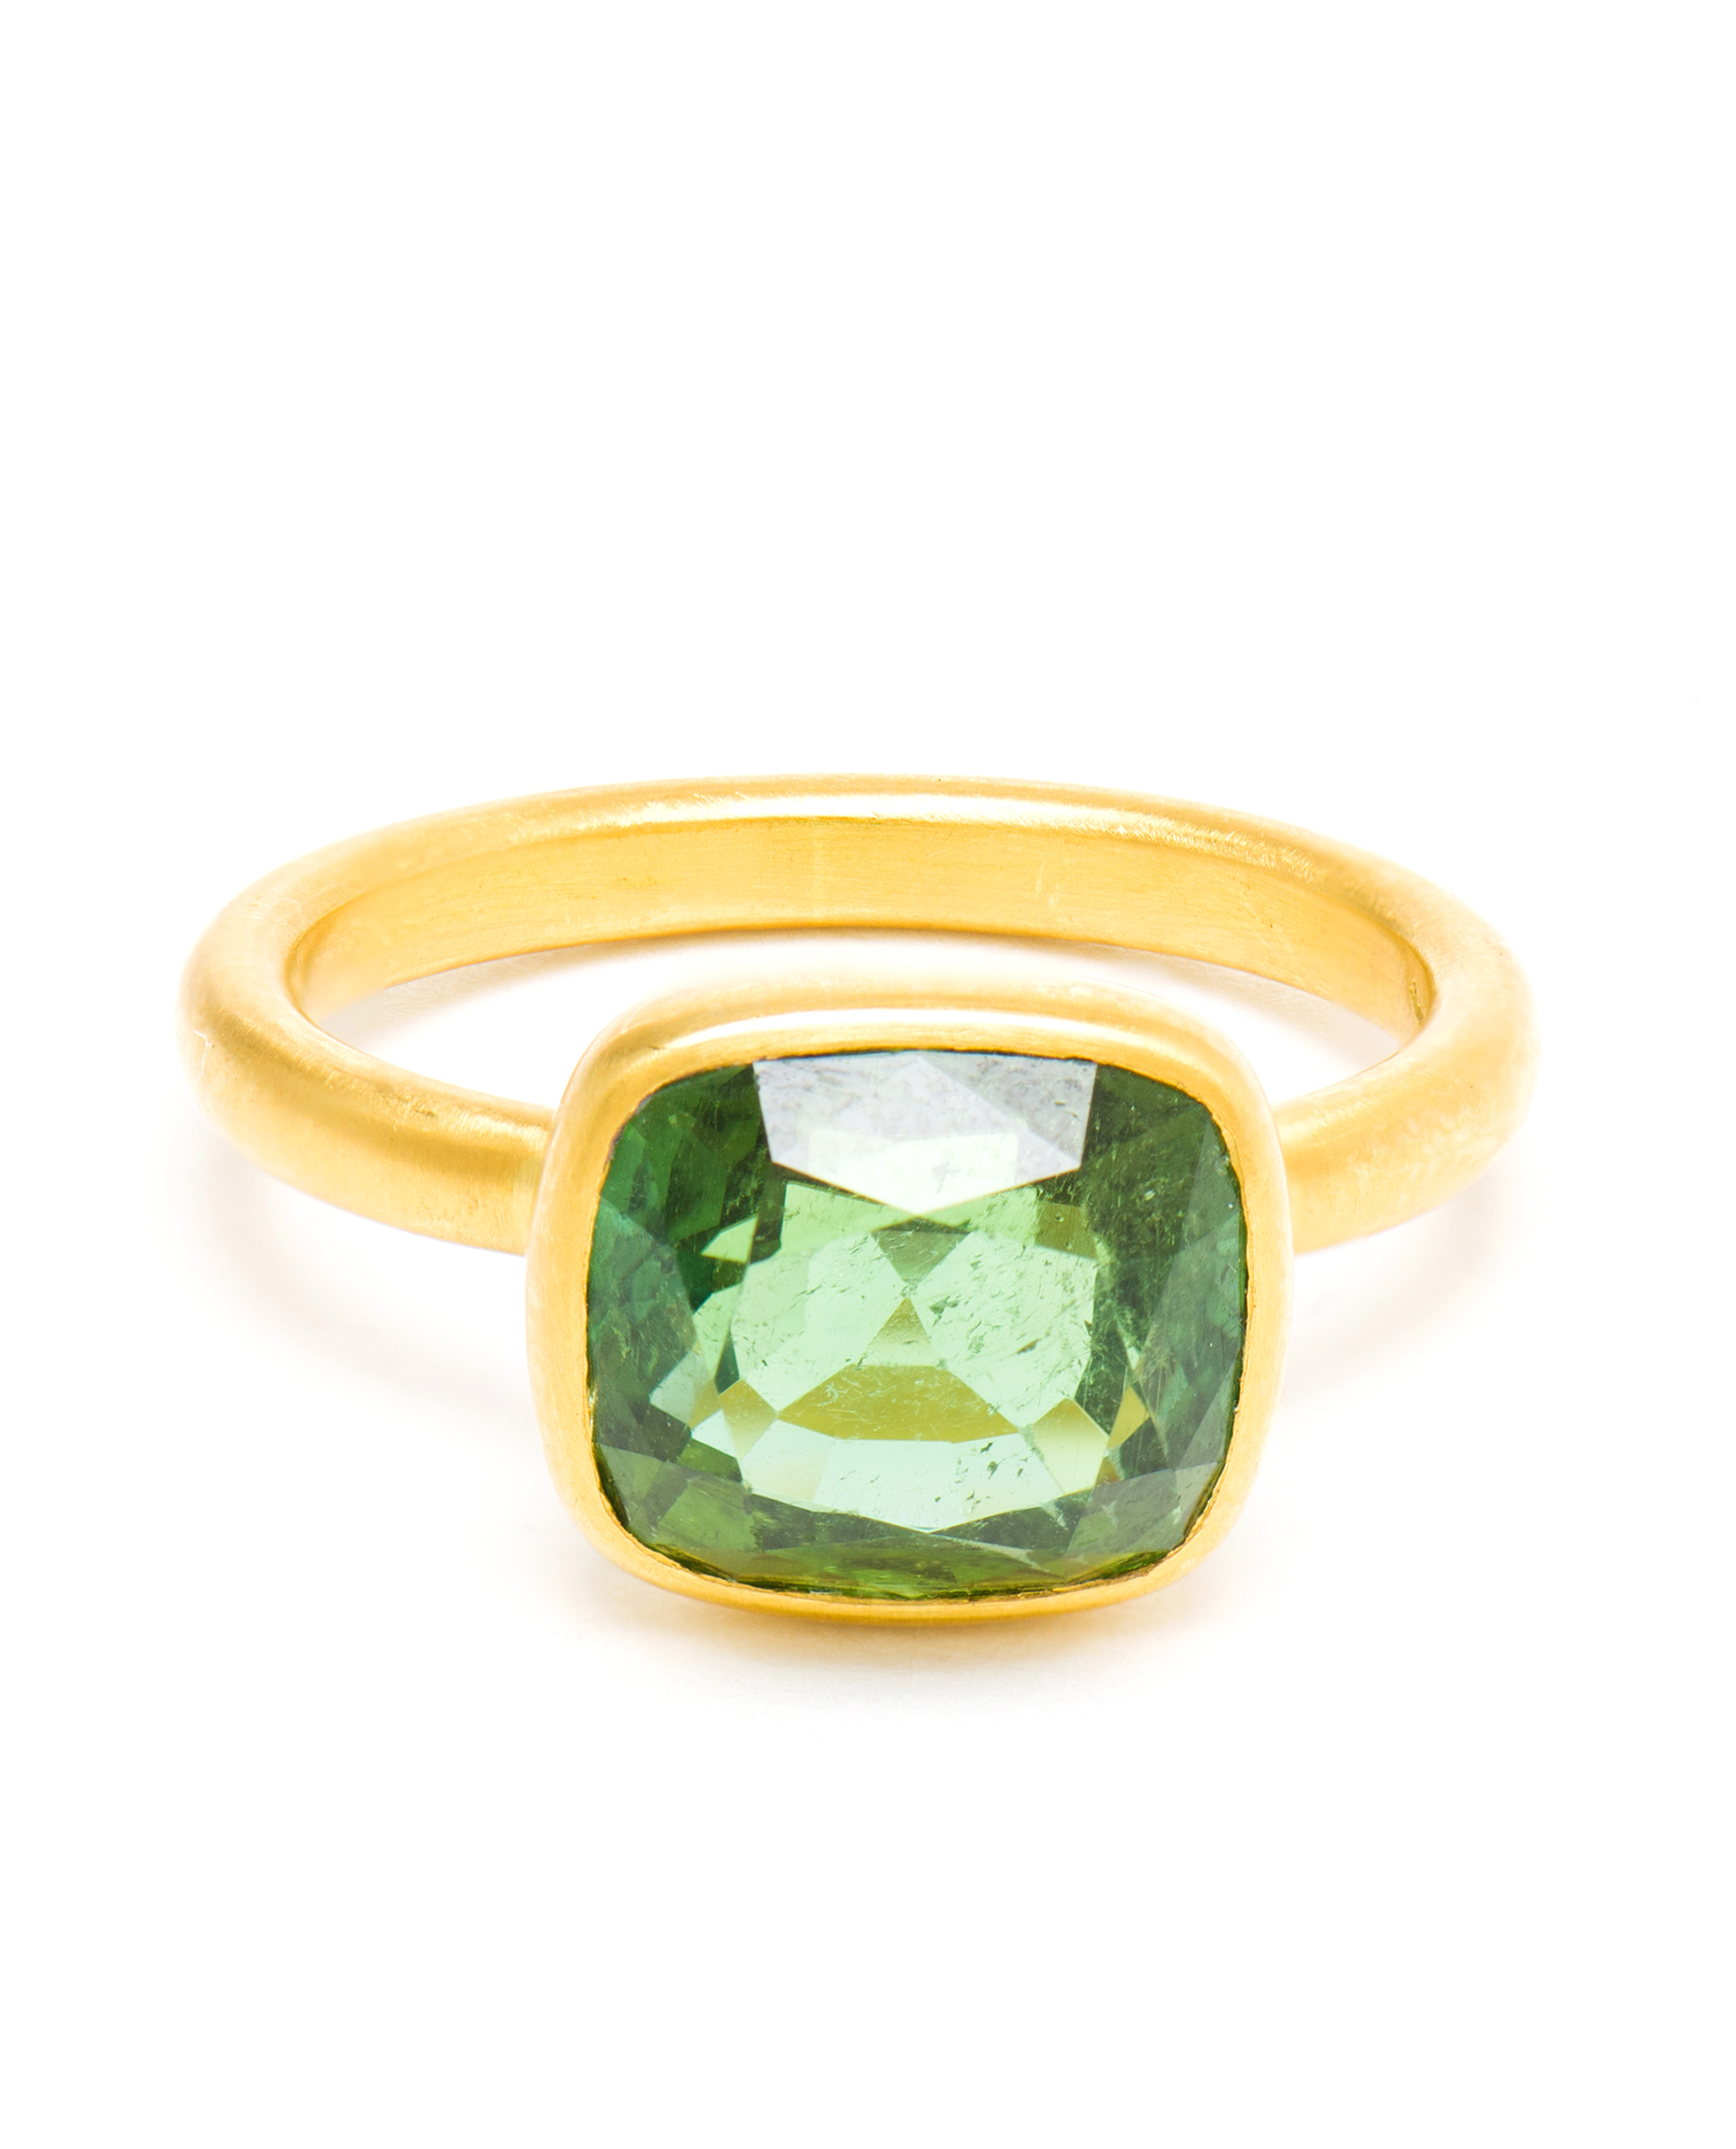 white tourmaline the ring tw with diamonds gold maine katahdin and green rings yellow in